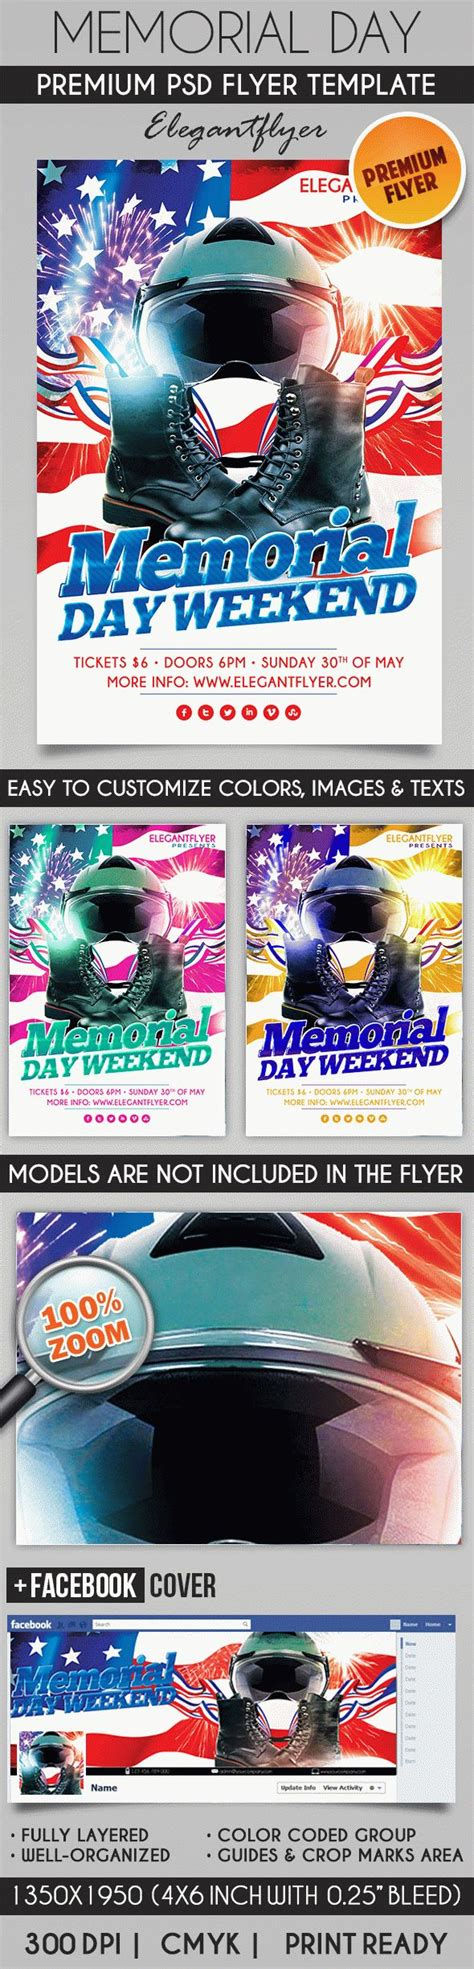 Memorial Day Flyer Template By Elegantflyer Free Funeral Flyer Template Psd